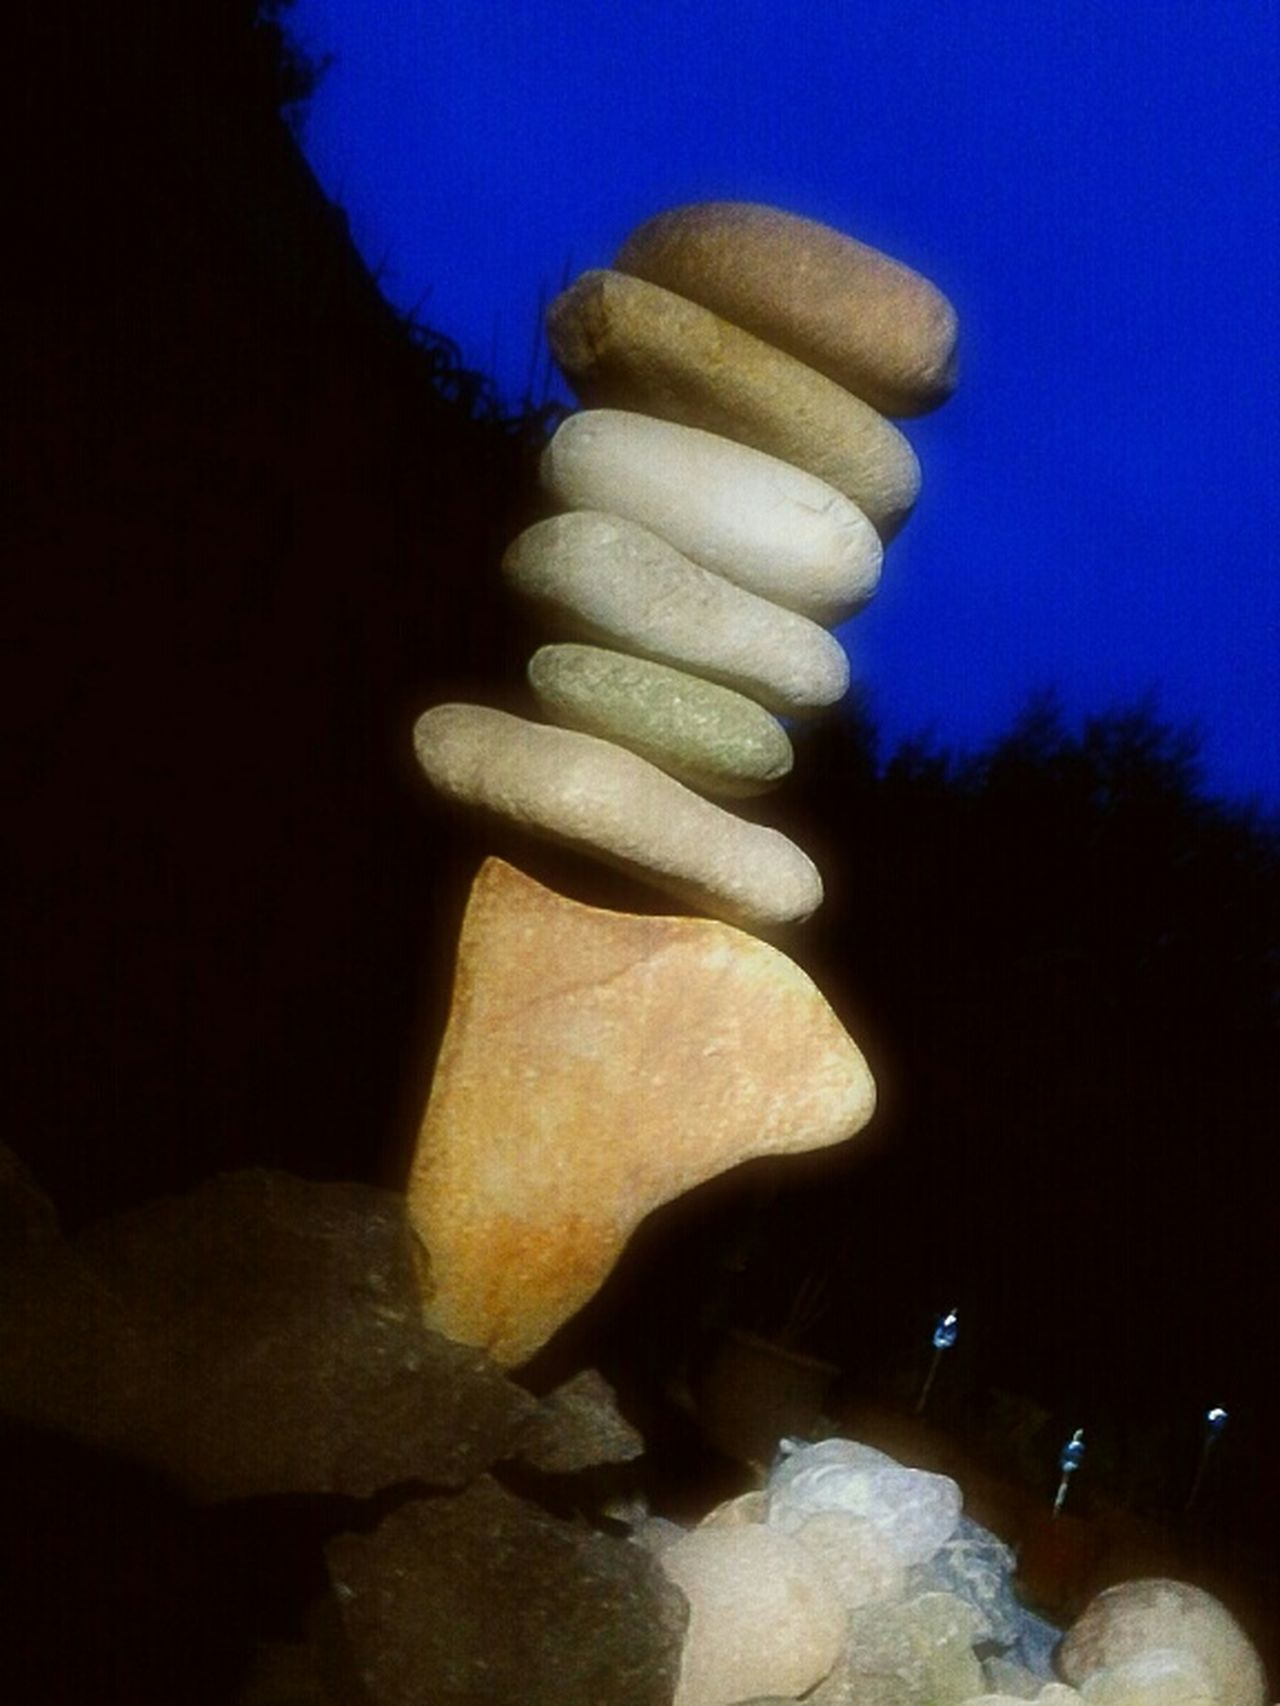 I Like Playing With Stones Rockbalancing At Night Taking Rockbalancing To A Higher Level